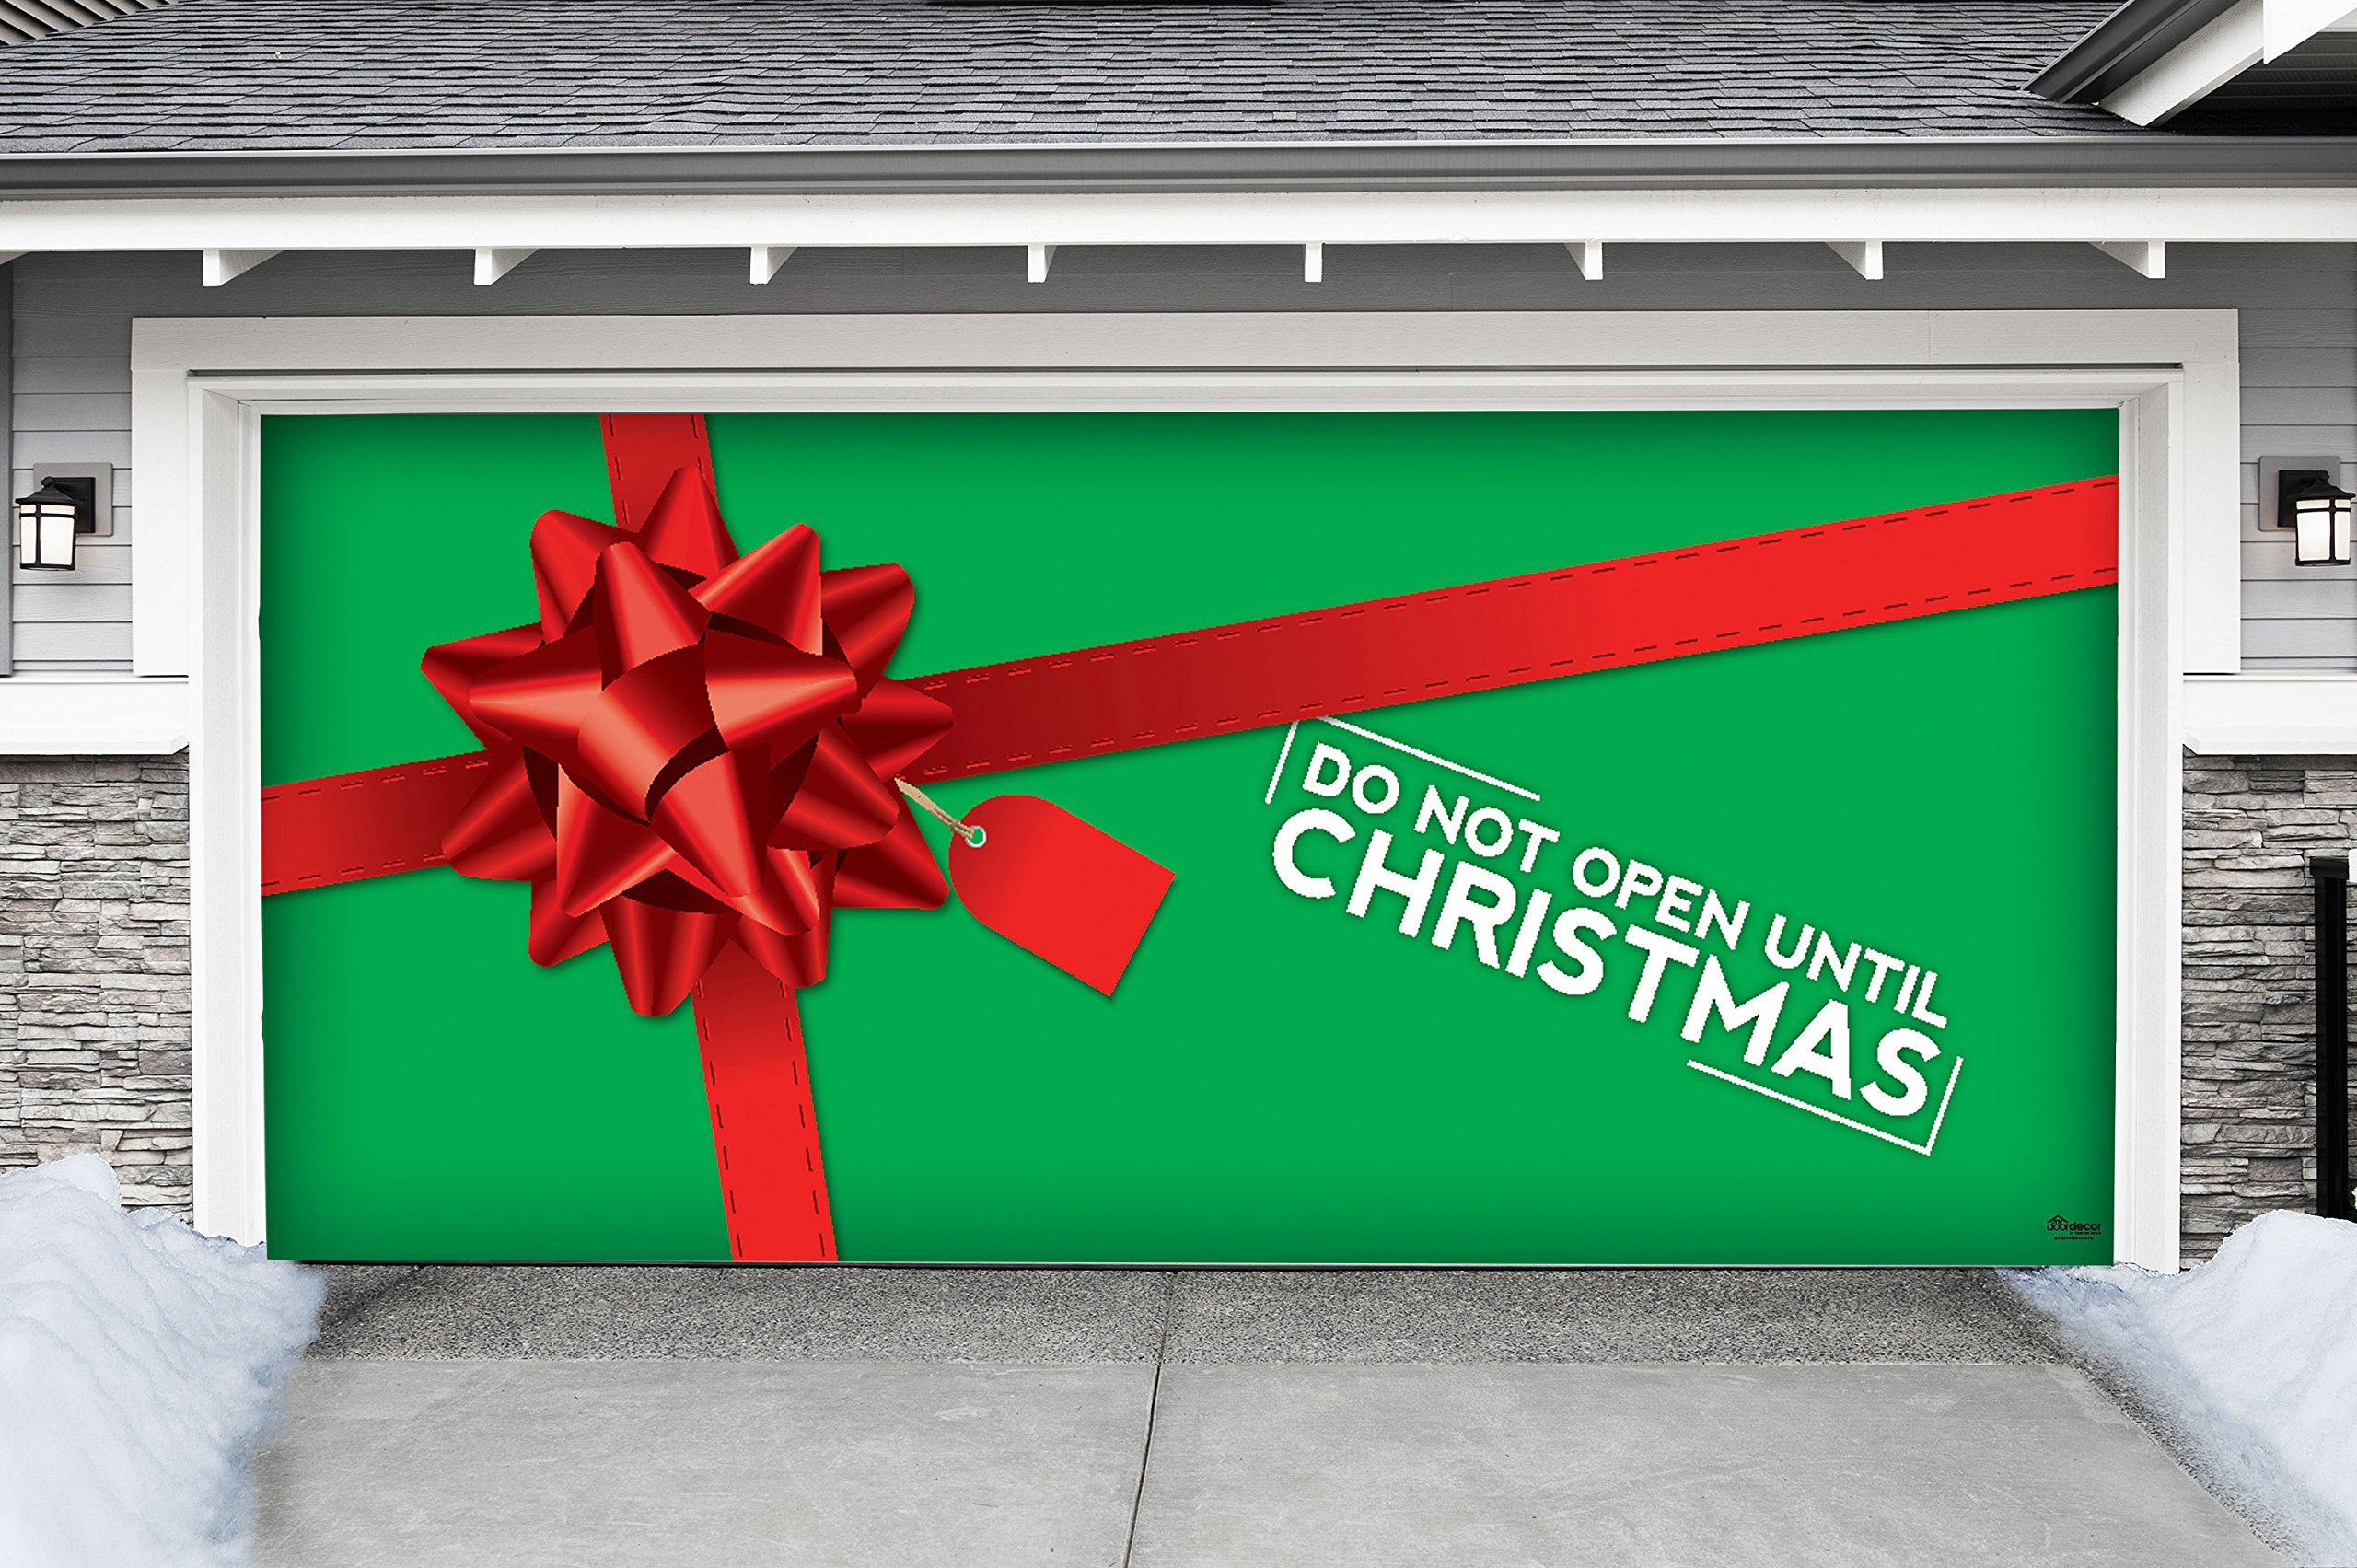 Outdoor Christmas Holiday Garage Door Banner Cover Mural Décoration - Don't Open Until Christmas Present - Outdoor Christmas Holiday Garage Door Banner Décor Sign 7'x16'